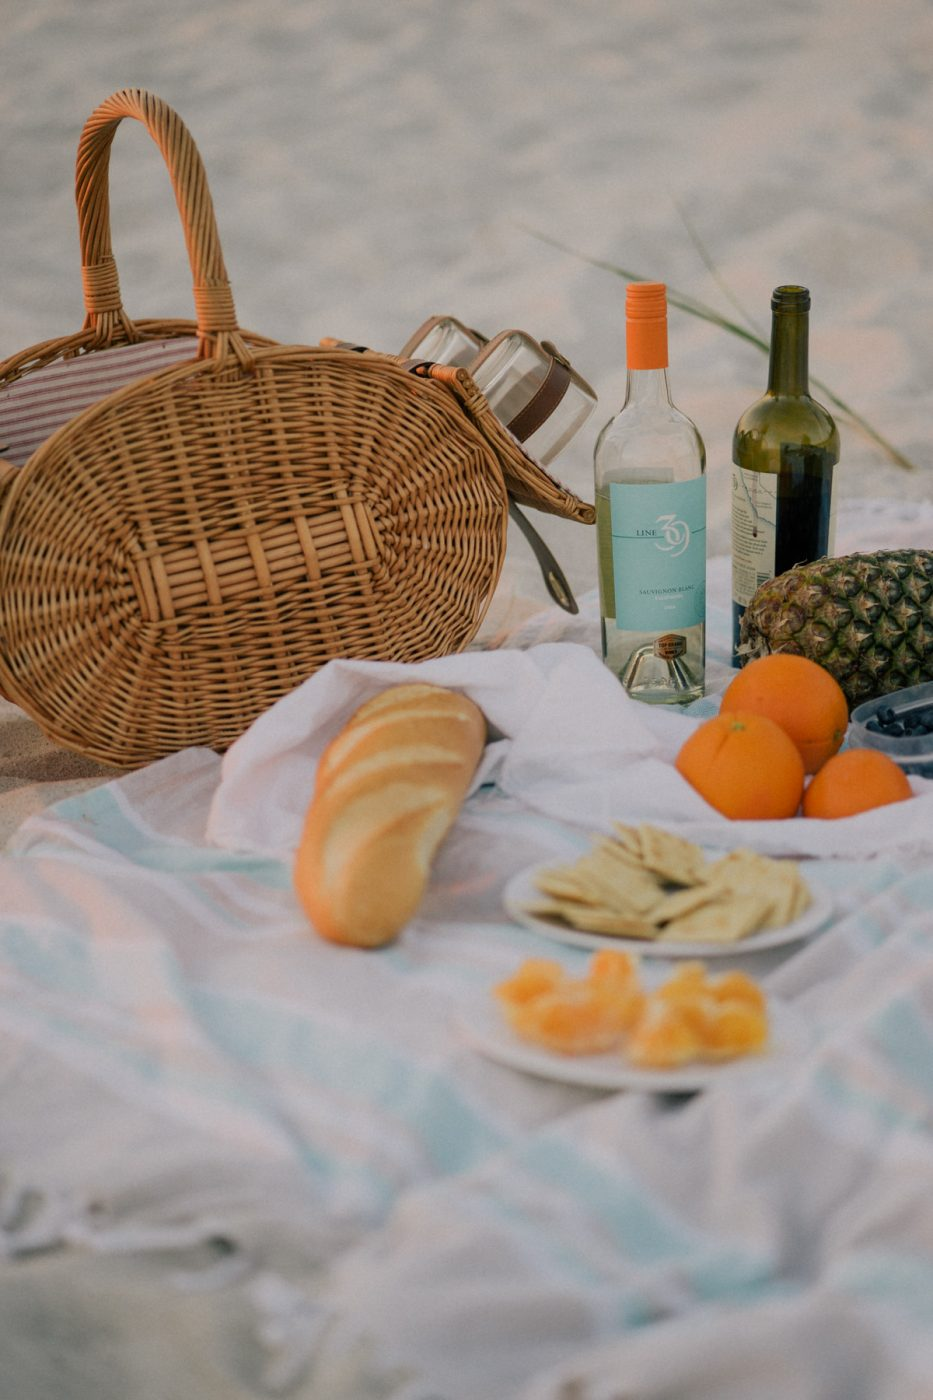 Beach Picnic with Line 39 Wine by Sweet Teal